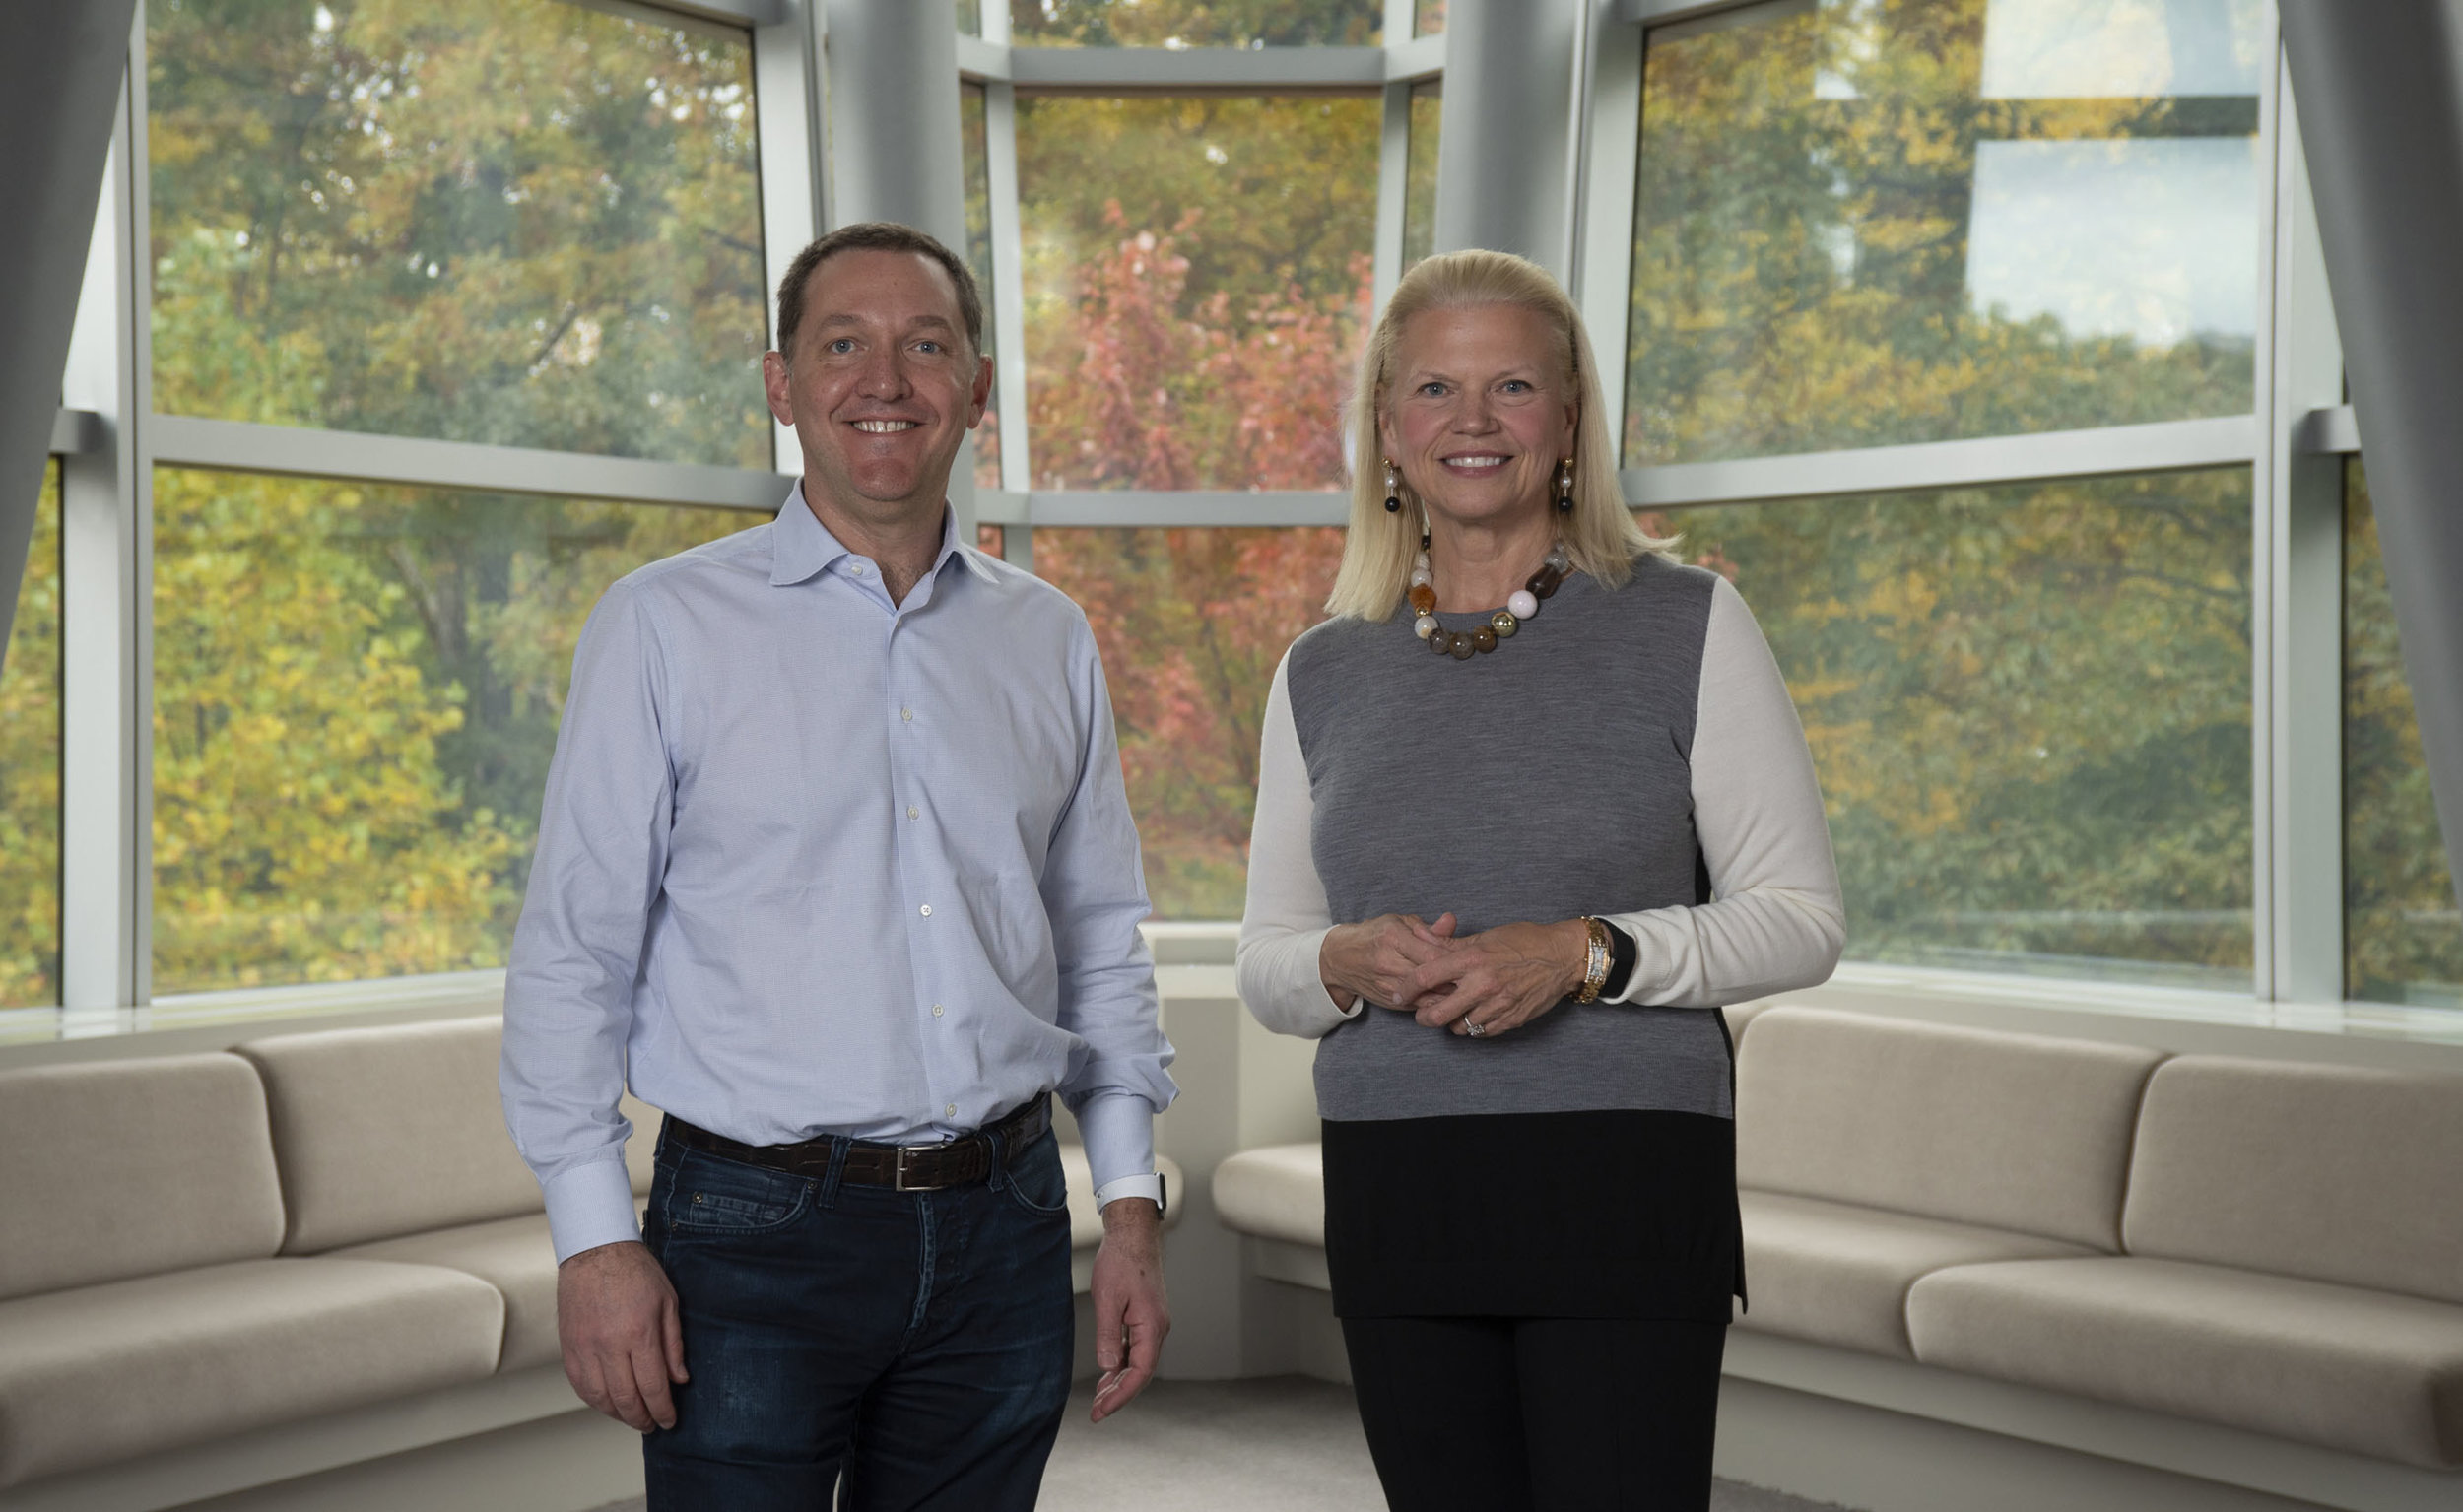 Ginni Rometty, Chairman, President, and CEO of IBM, at right, and James M. Whitehurst, CEO of Red Hat, left.